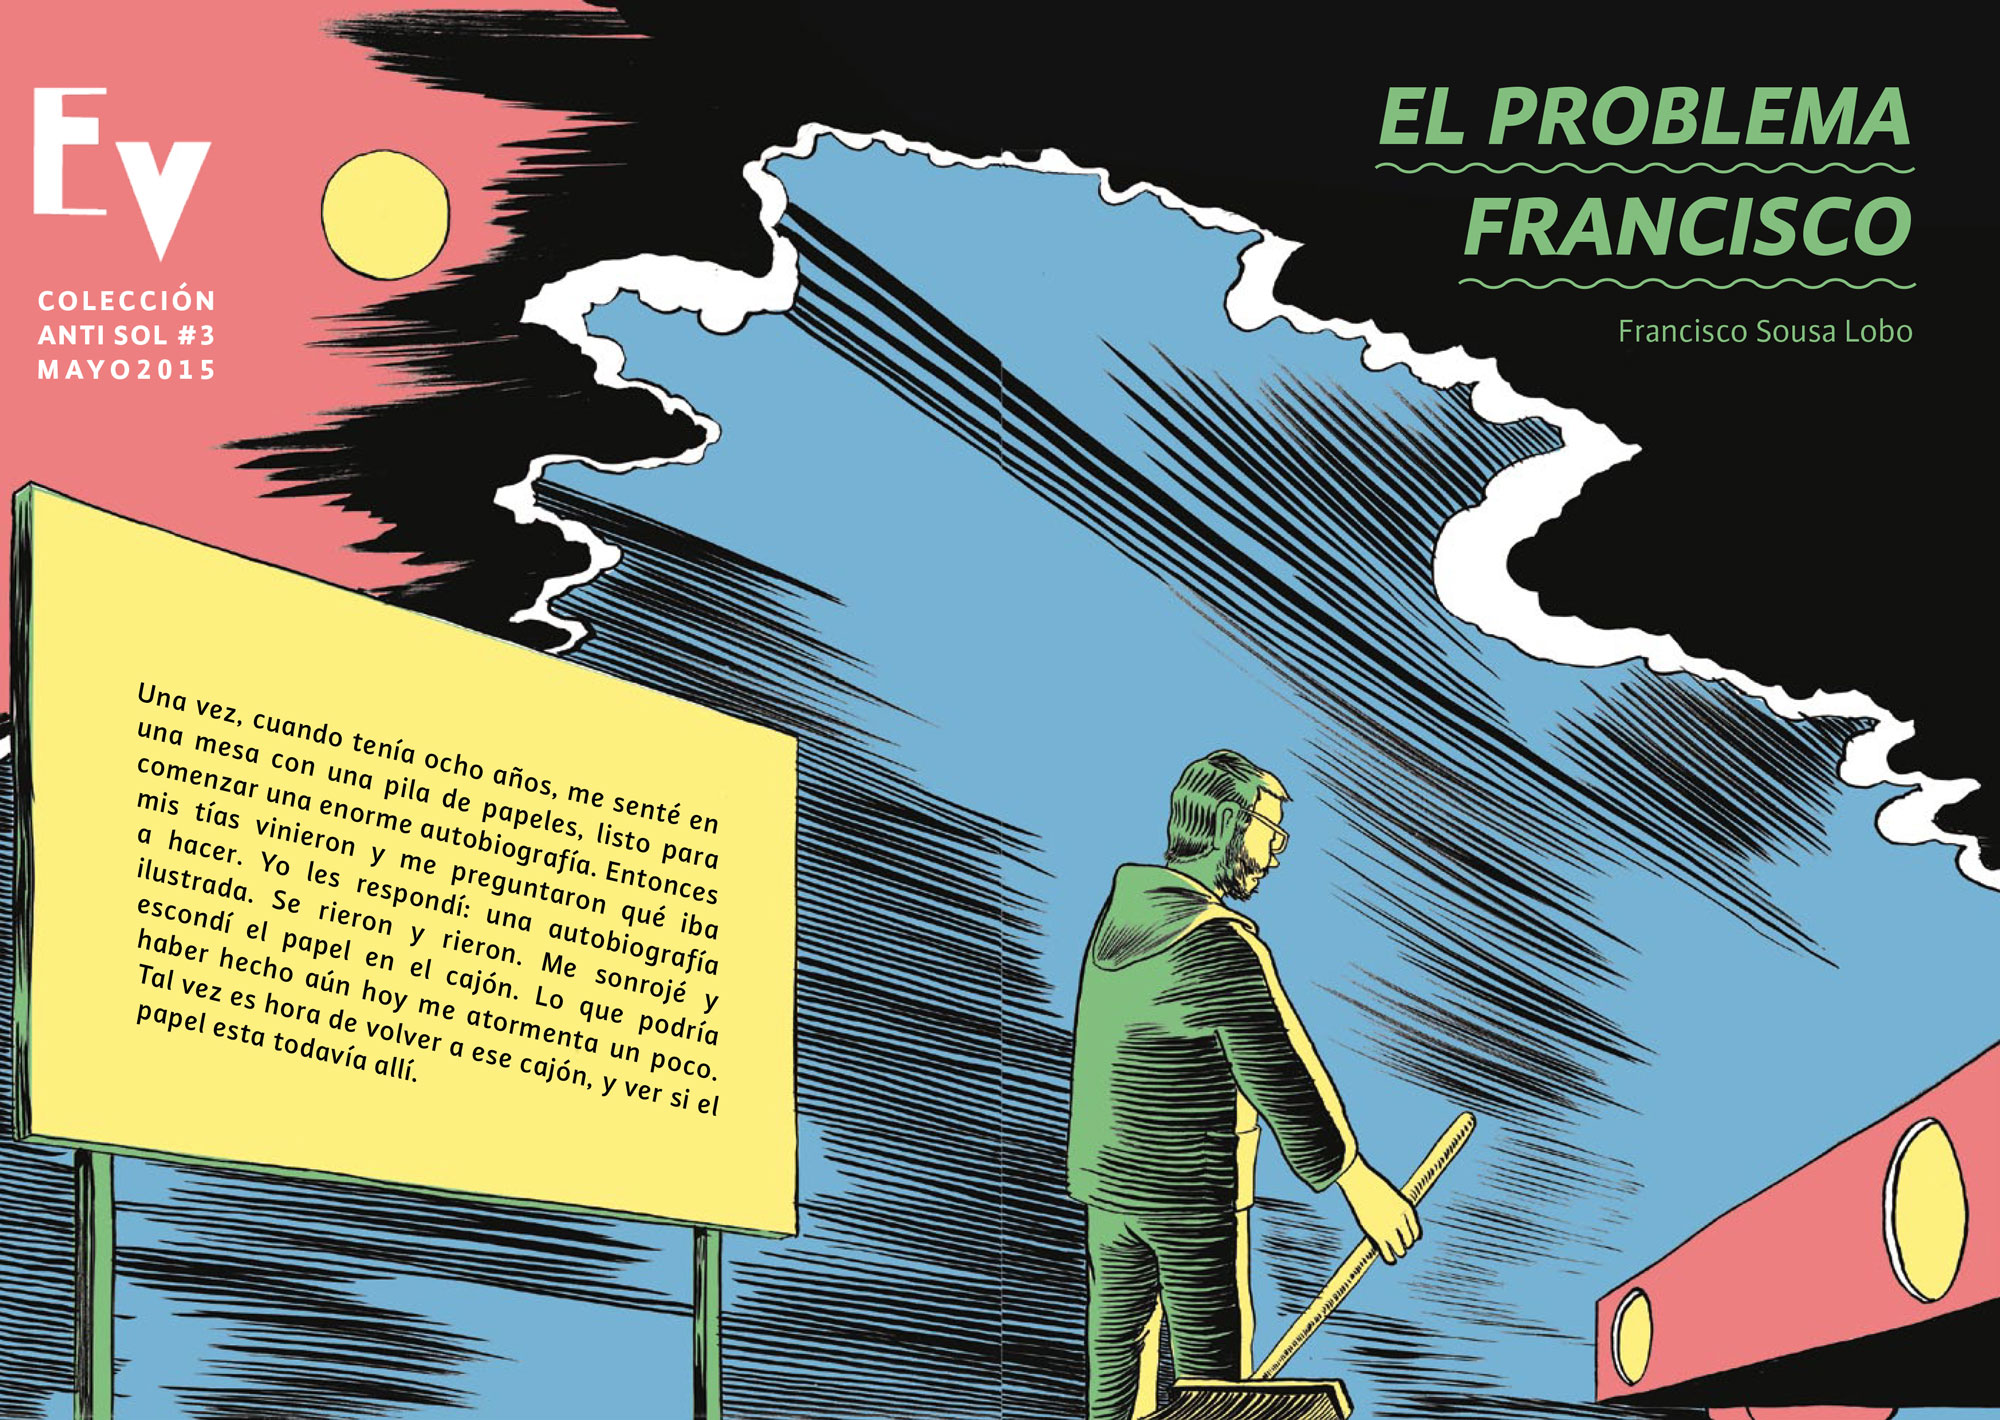 The Francisco Problem